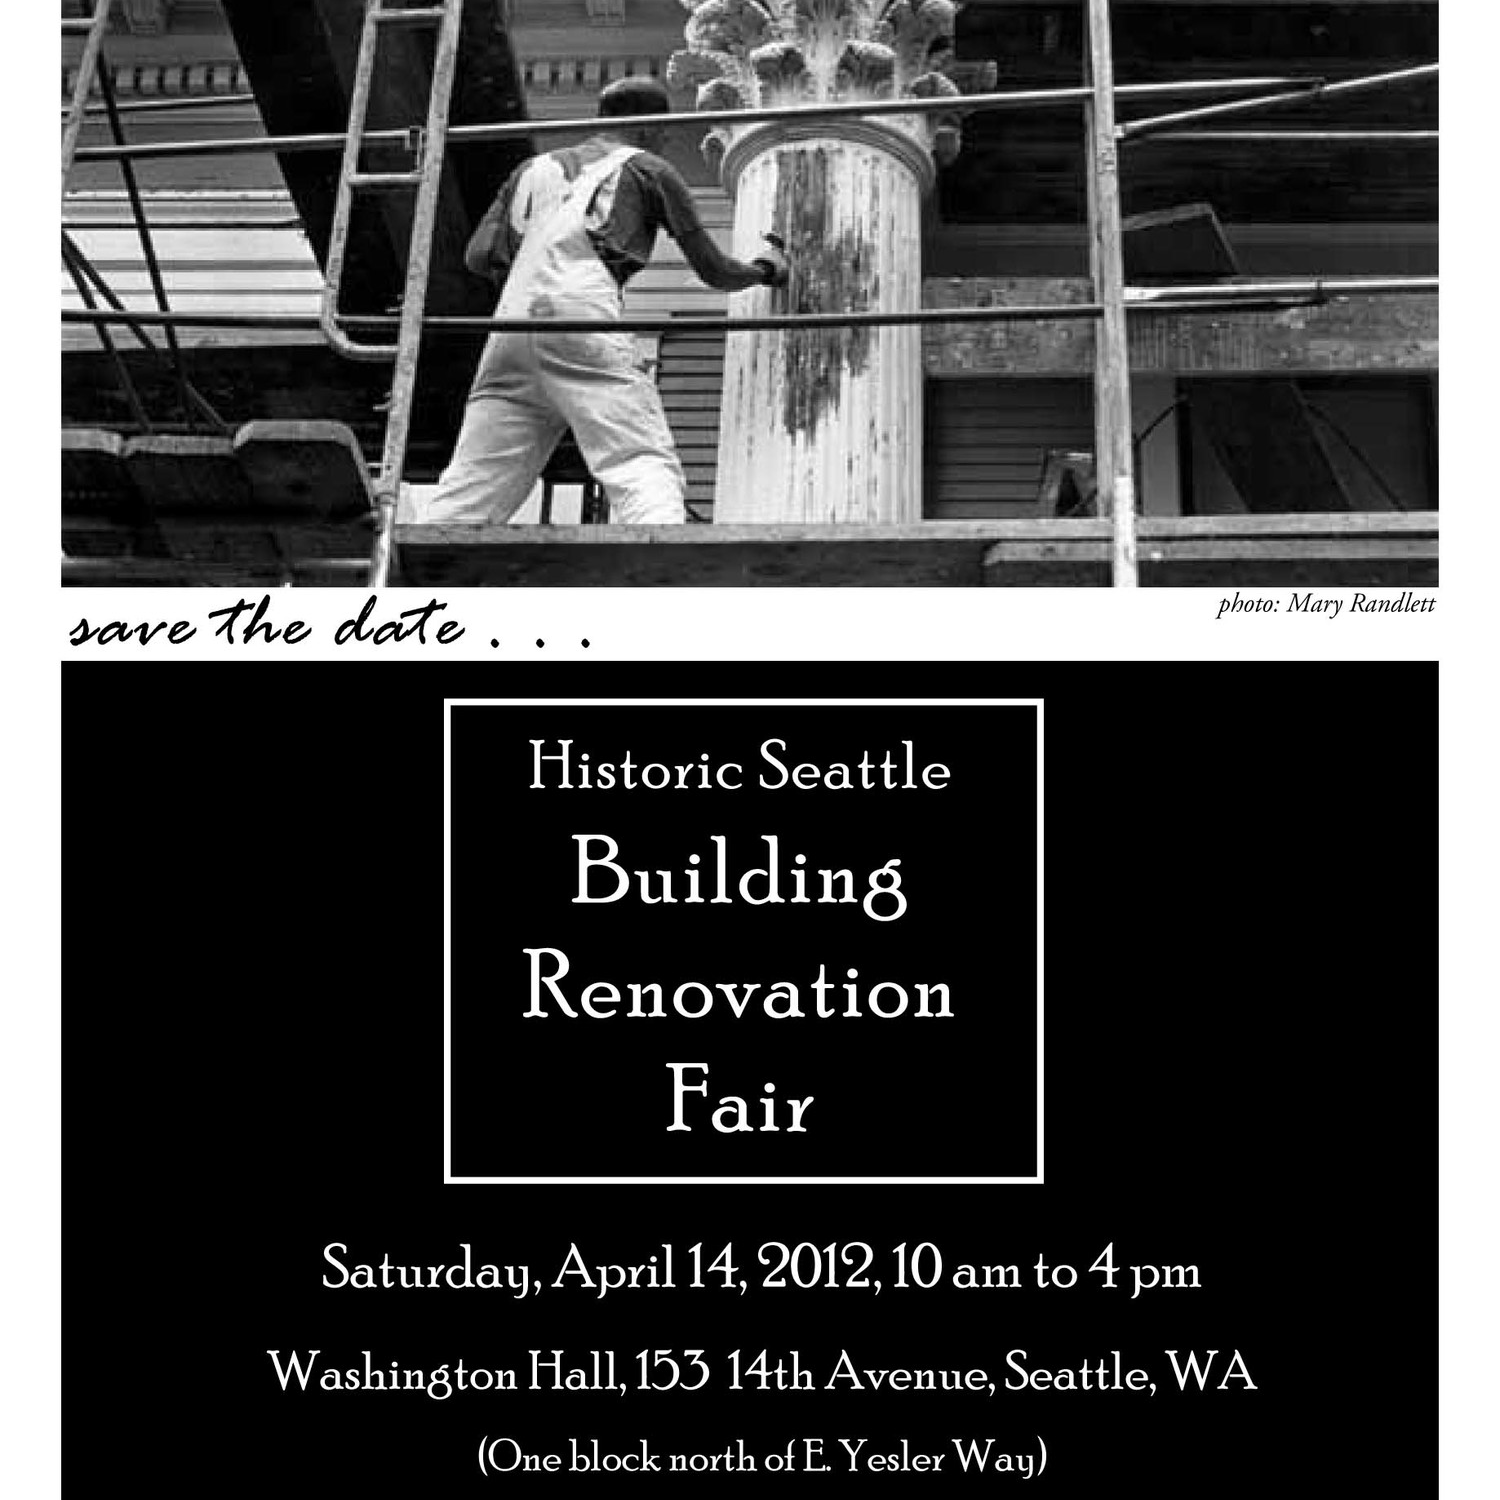 Find us at the Historic Seattle Building Renovation Fair on April 14, 2012